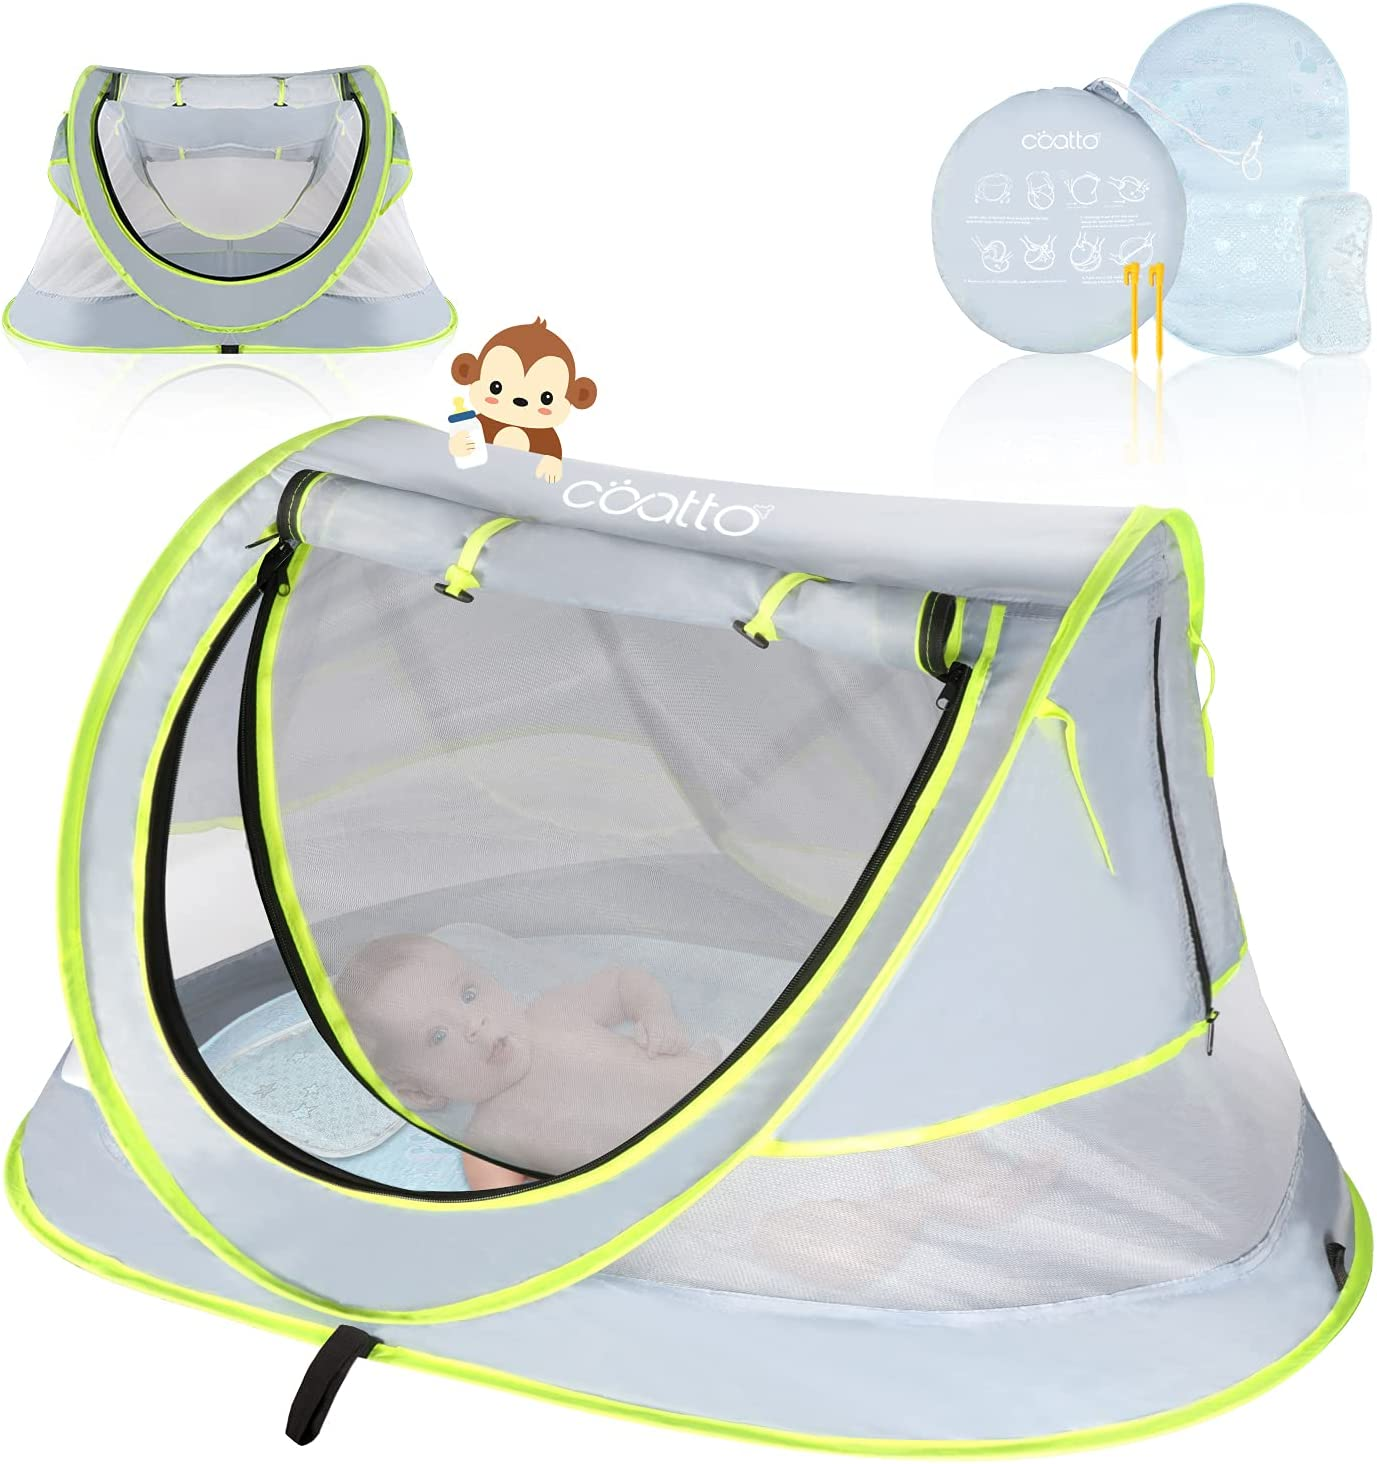 Portable Baby Tent, CCATTO Pop Up Beach Tent for Baby, Enhanced Ventilation, UPF 50+ Sun Shelter for Infant, Baby Camping Bed with Mosquito Net (Pegs, Travel Bag, Bonus Cooling Sleeping Kit Included)